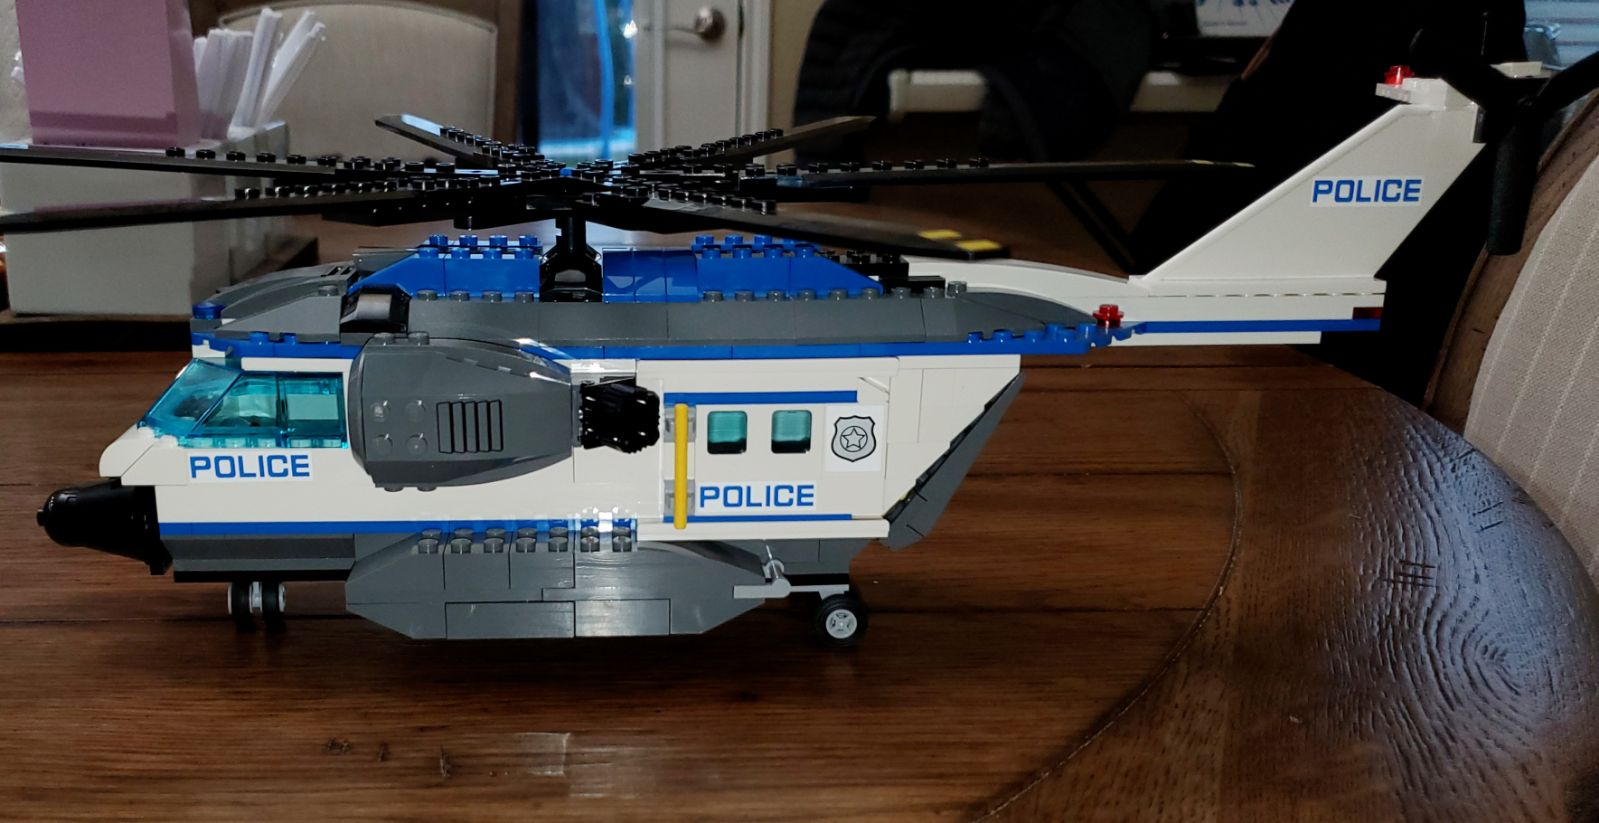 Lego City Police Helicopter 60046